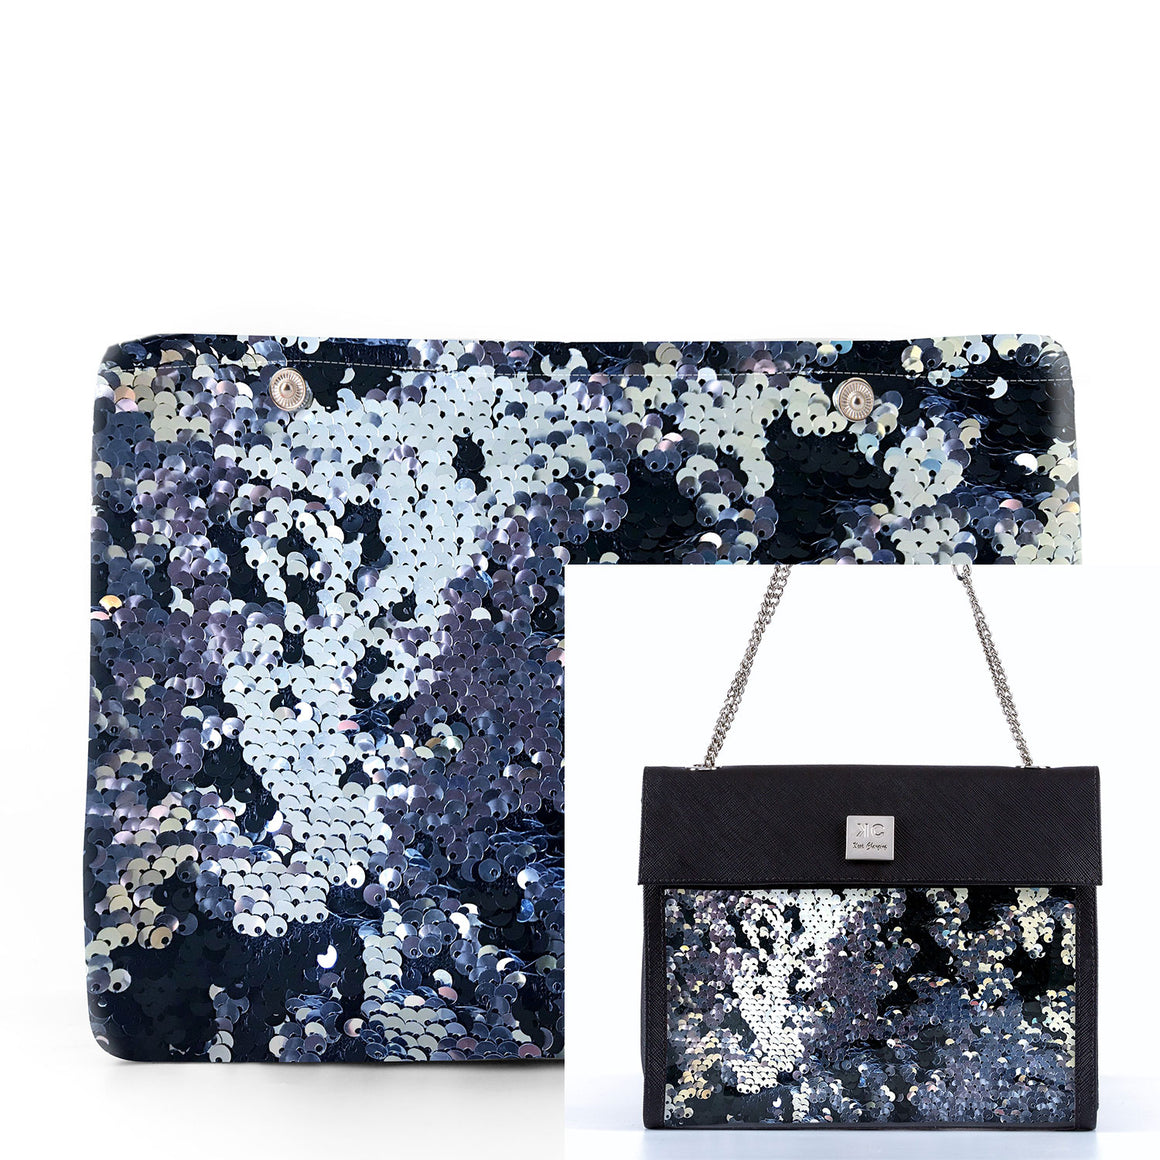 Lost Stars - Fabric Insert (Shoulder Bag)